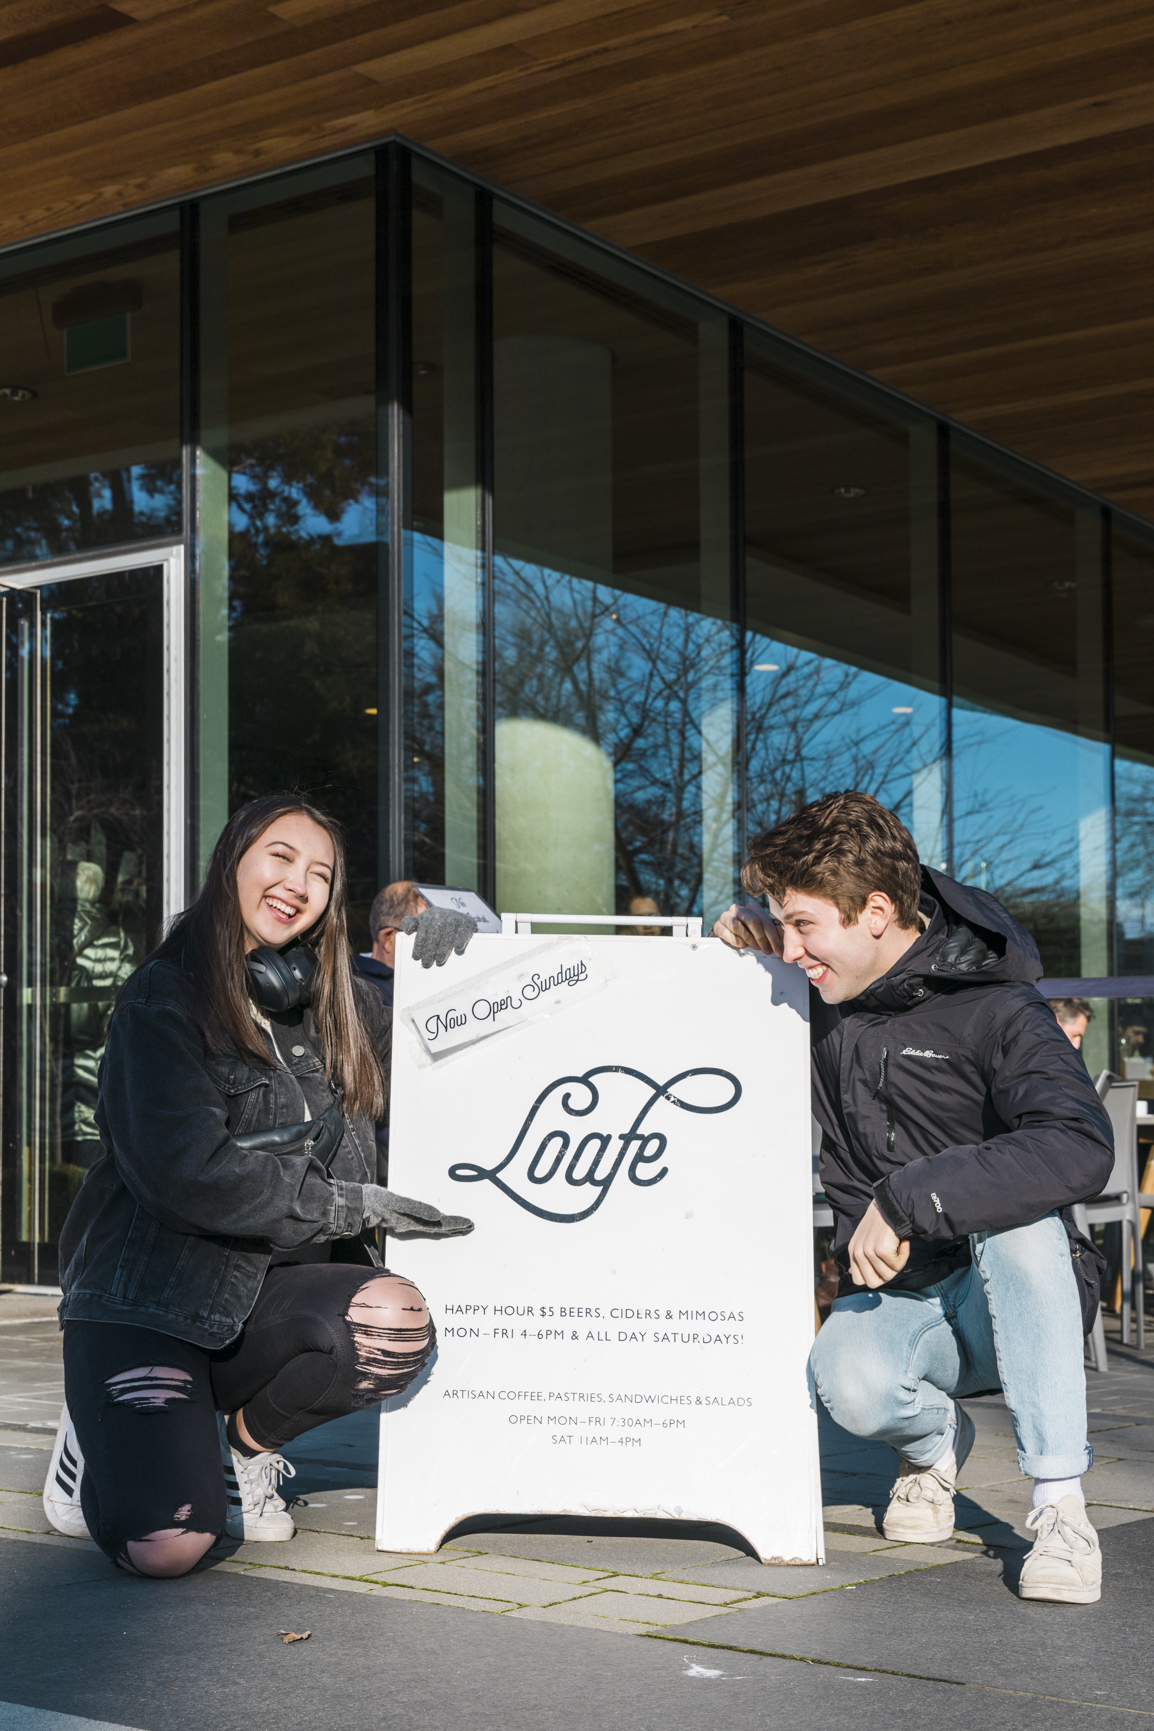 Kana and Jordan with the Loafe sandwich board